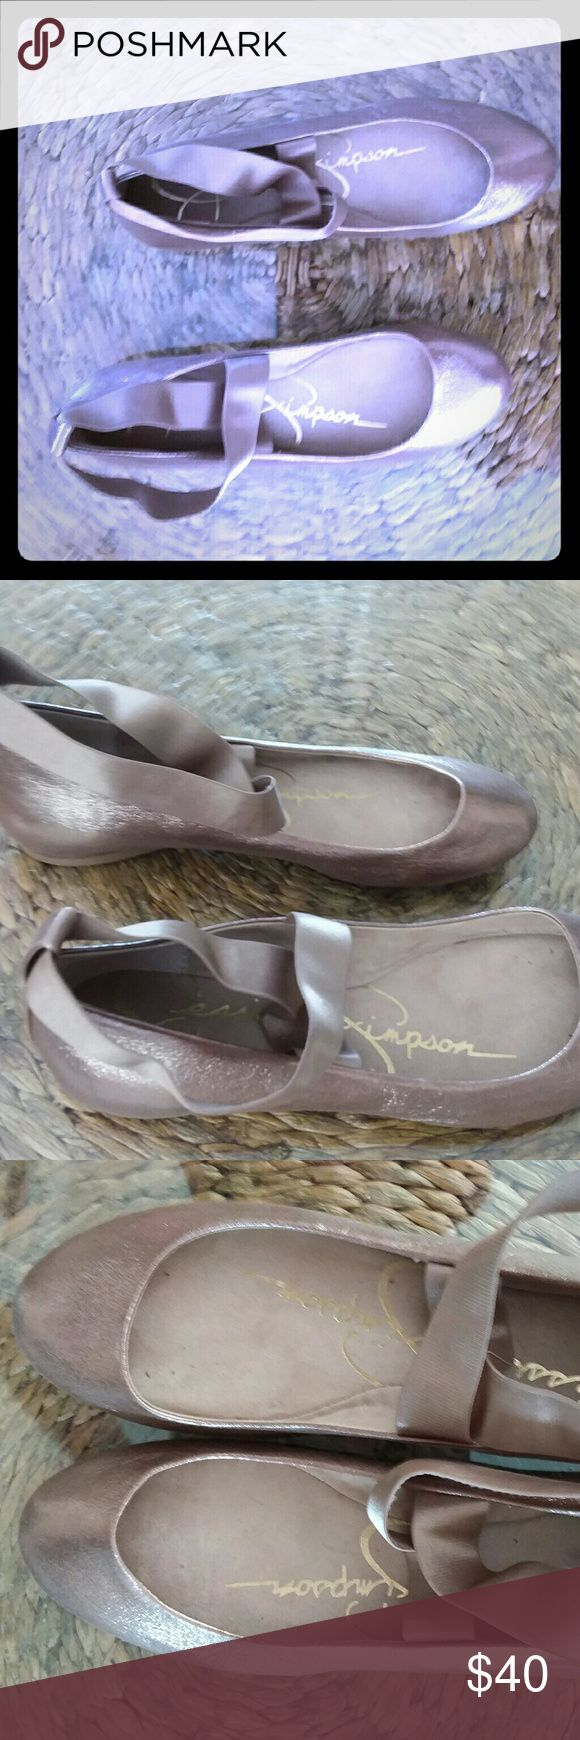 Jessica Simpson ballet slippers Super cute gold/nude colored flats never worn! Jessica Simpson Shoes Flats & Loafers